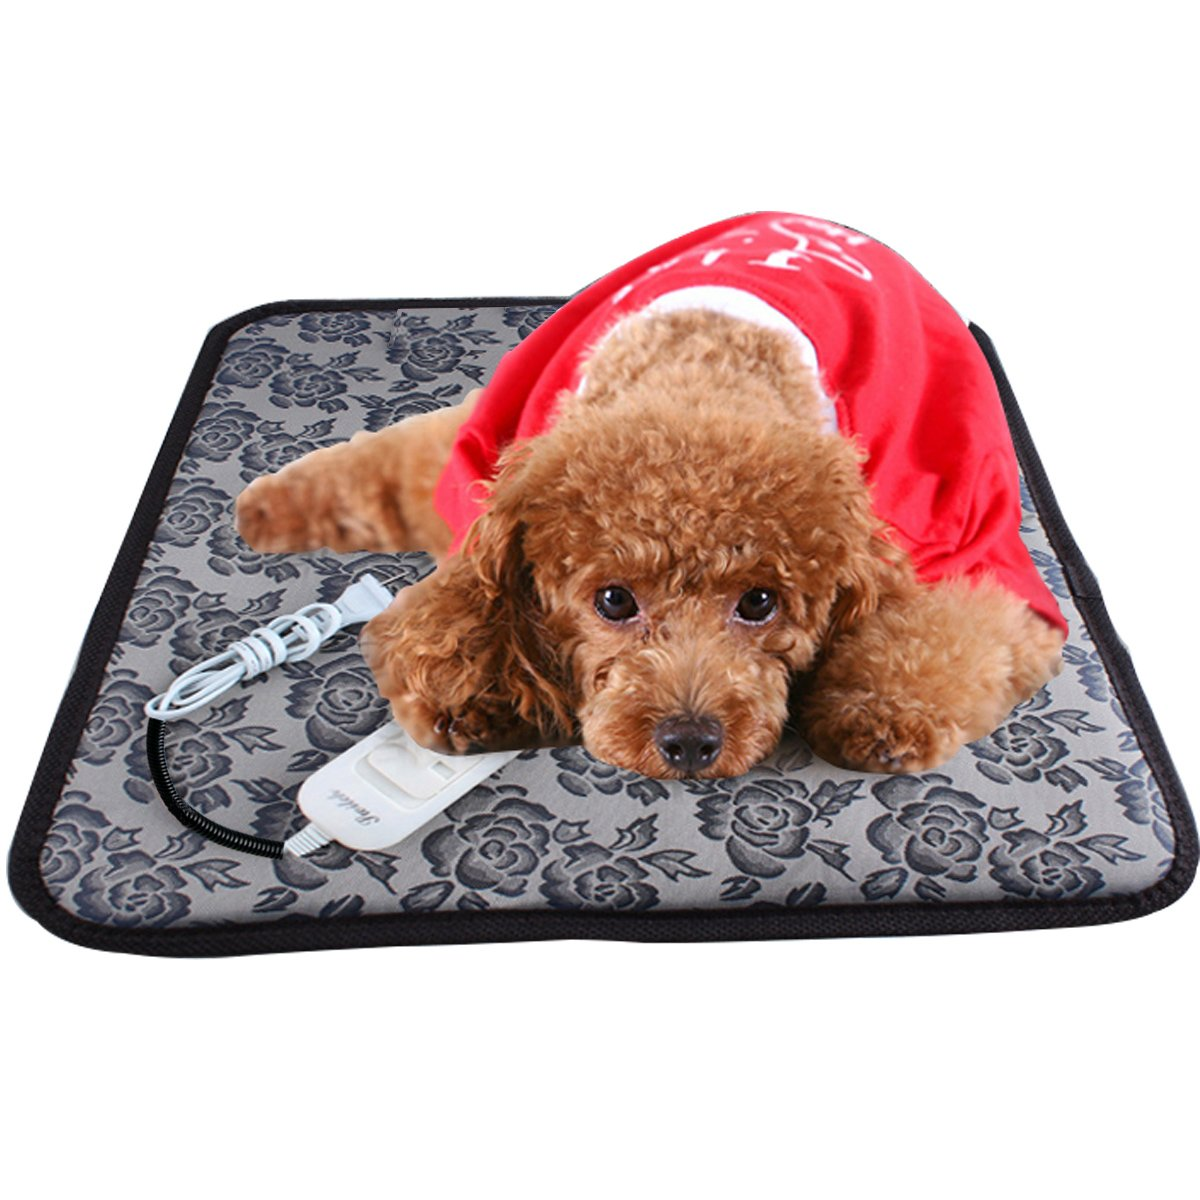 Get Quotations Dog Heating Pad Aopet Pet Electric Blanket Heater Mat Cat Warming Waterproof Heated Beds With Chew